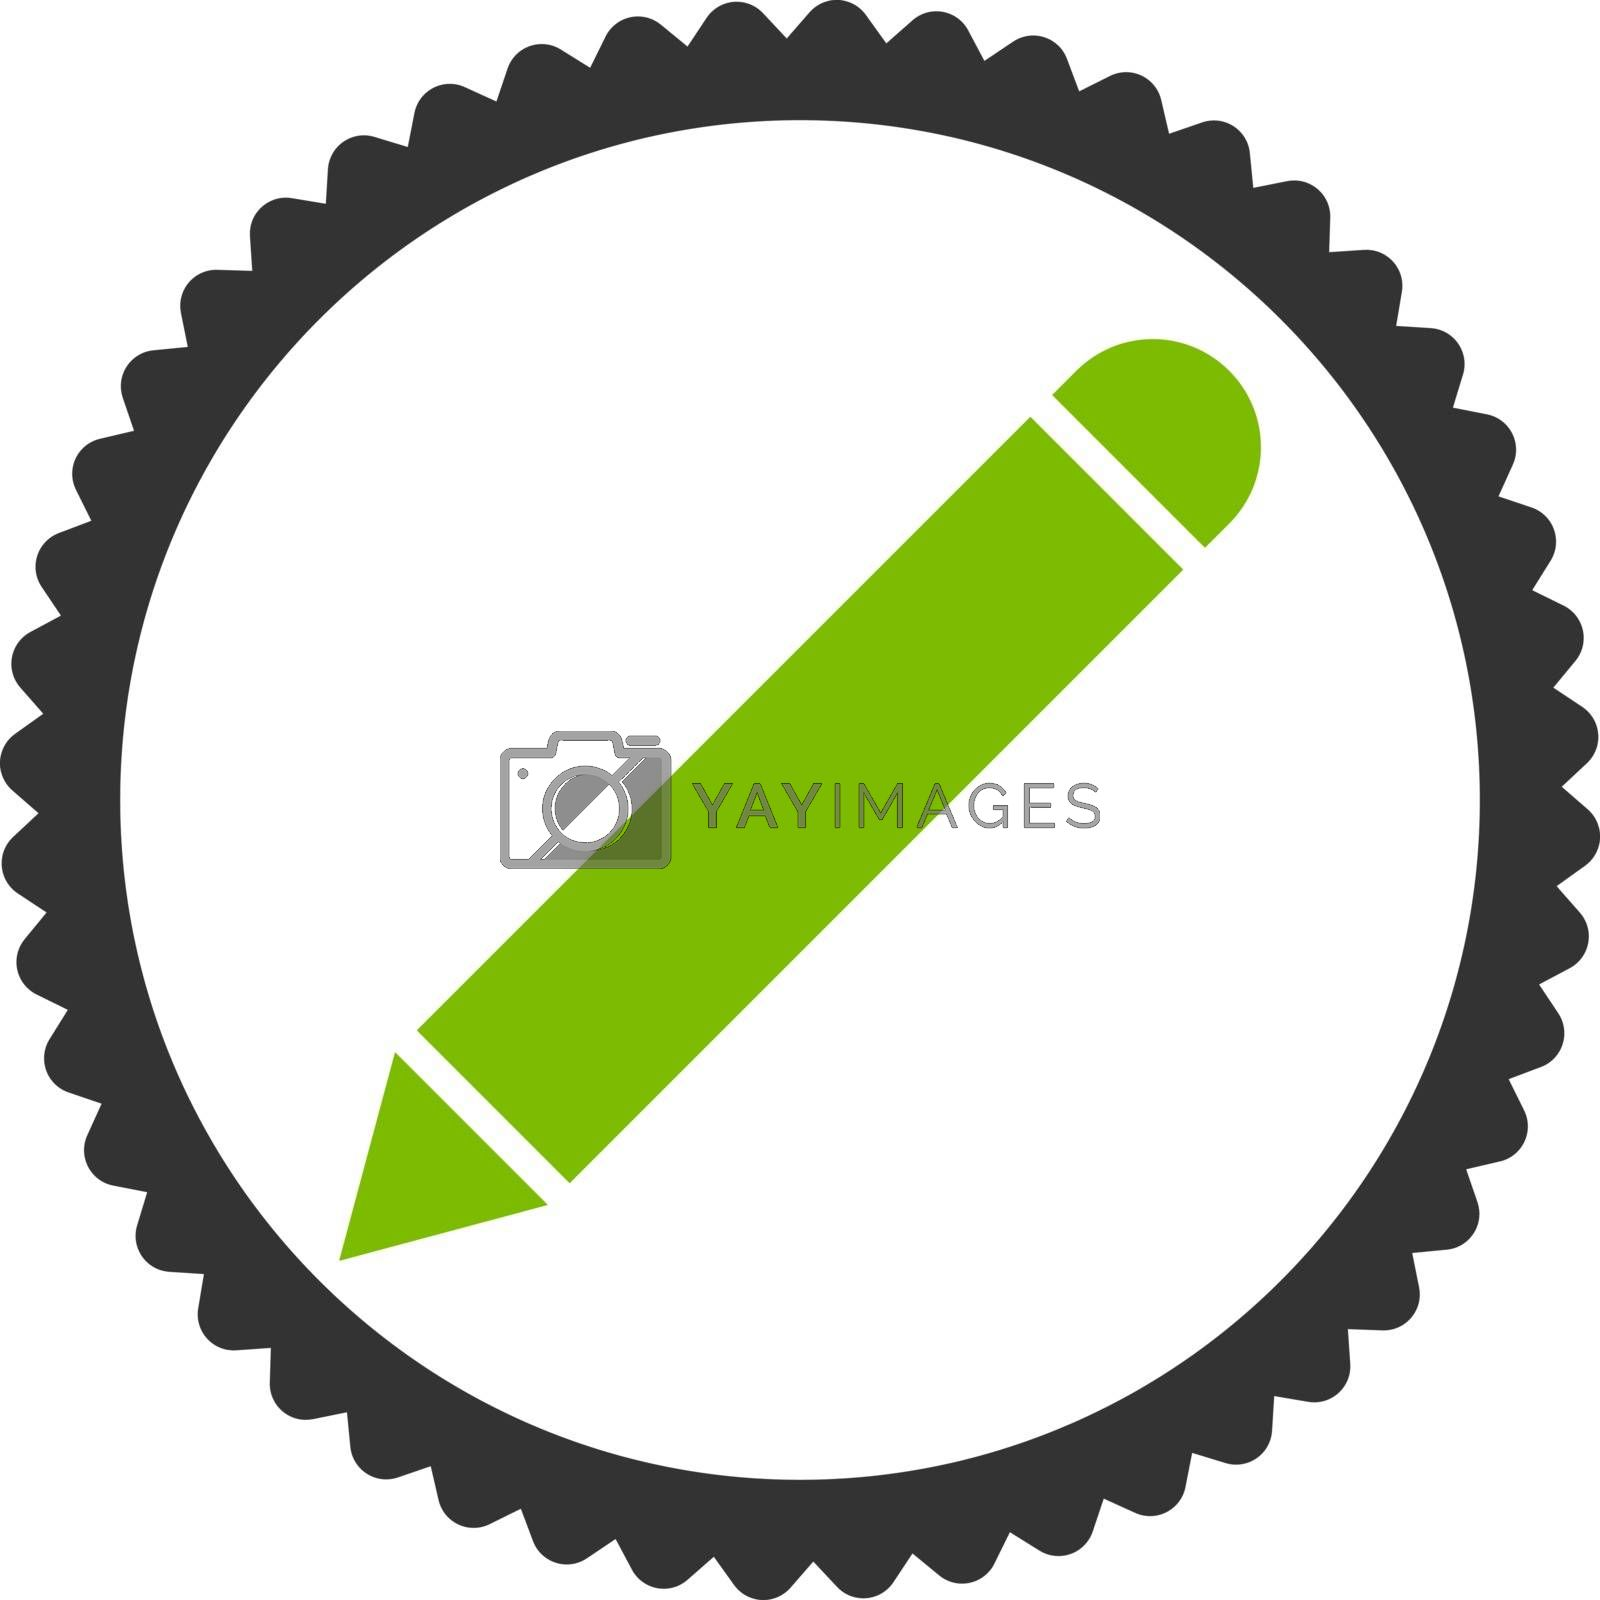 Pencil flat eco green and gray colors round stamp icon by Aha-Soft